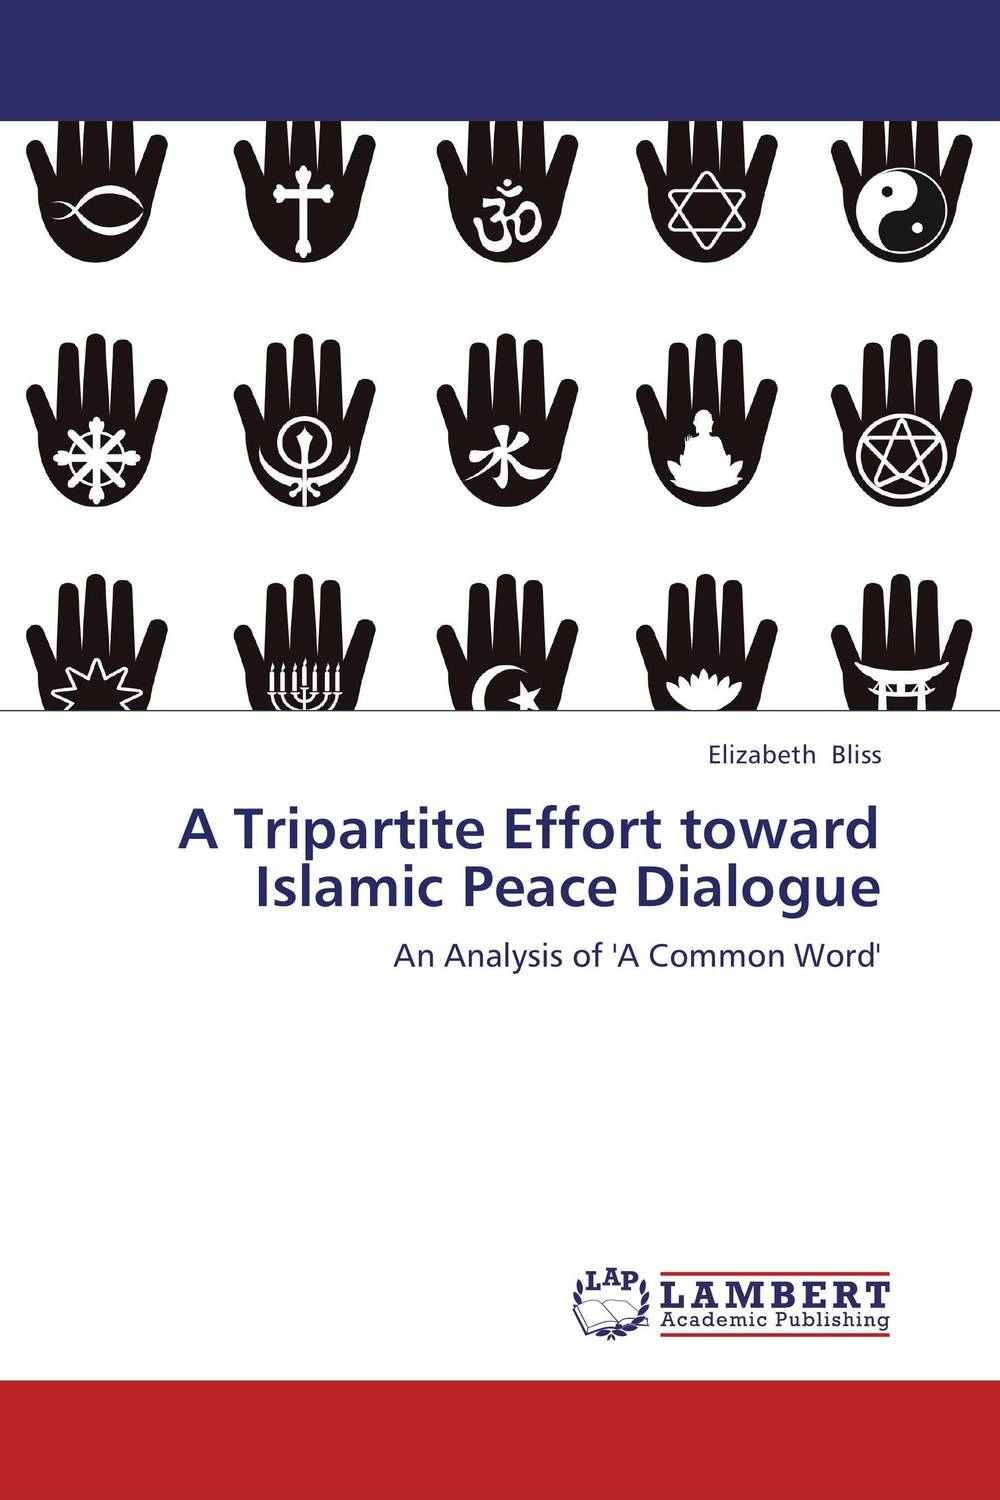 A Tripartite Effort toward Islamic Peace Dialogue a lingis community of those who have nothing in common